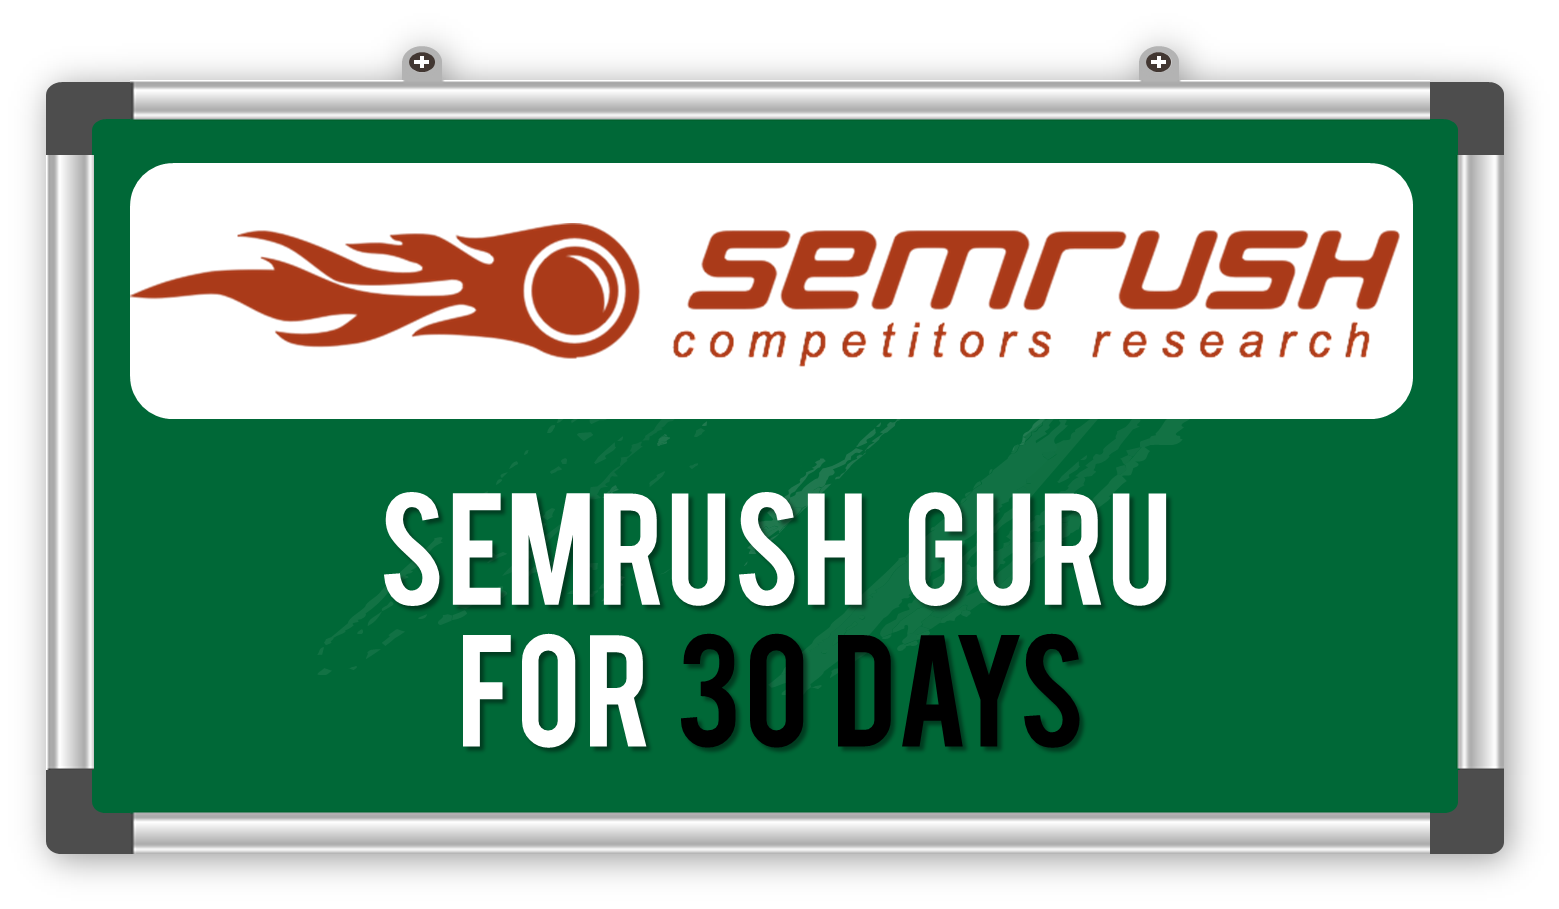 GET SEMrush GURU for 30 days Private Account   Cheapest Pric